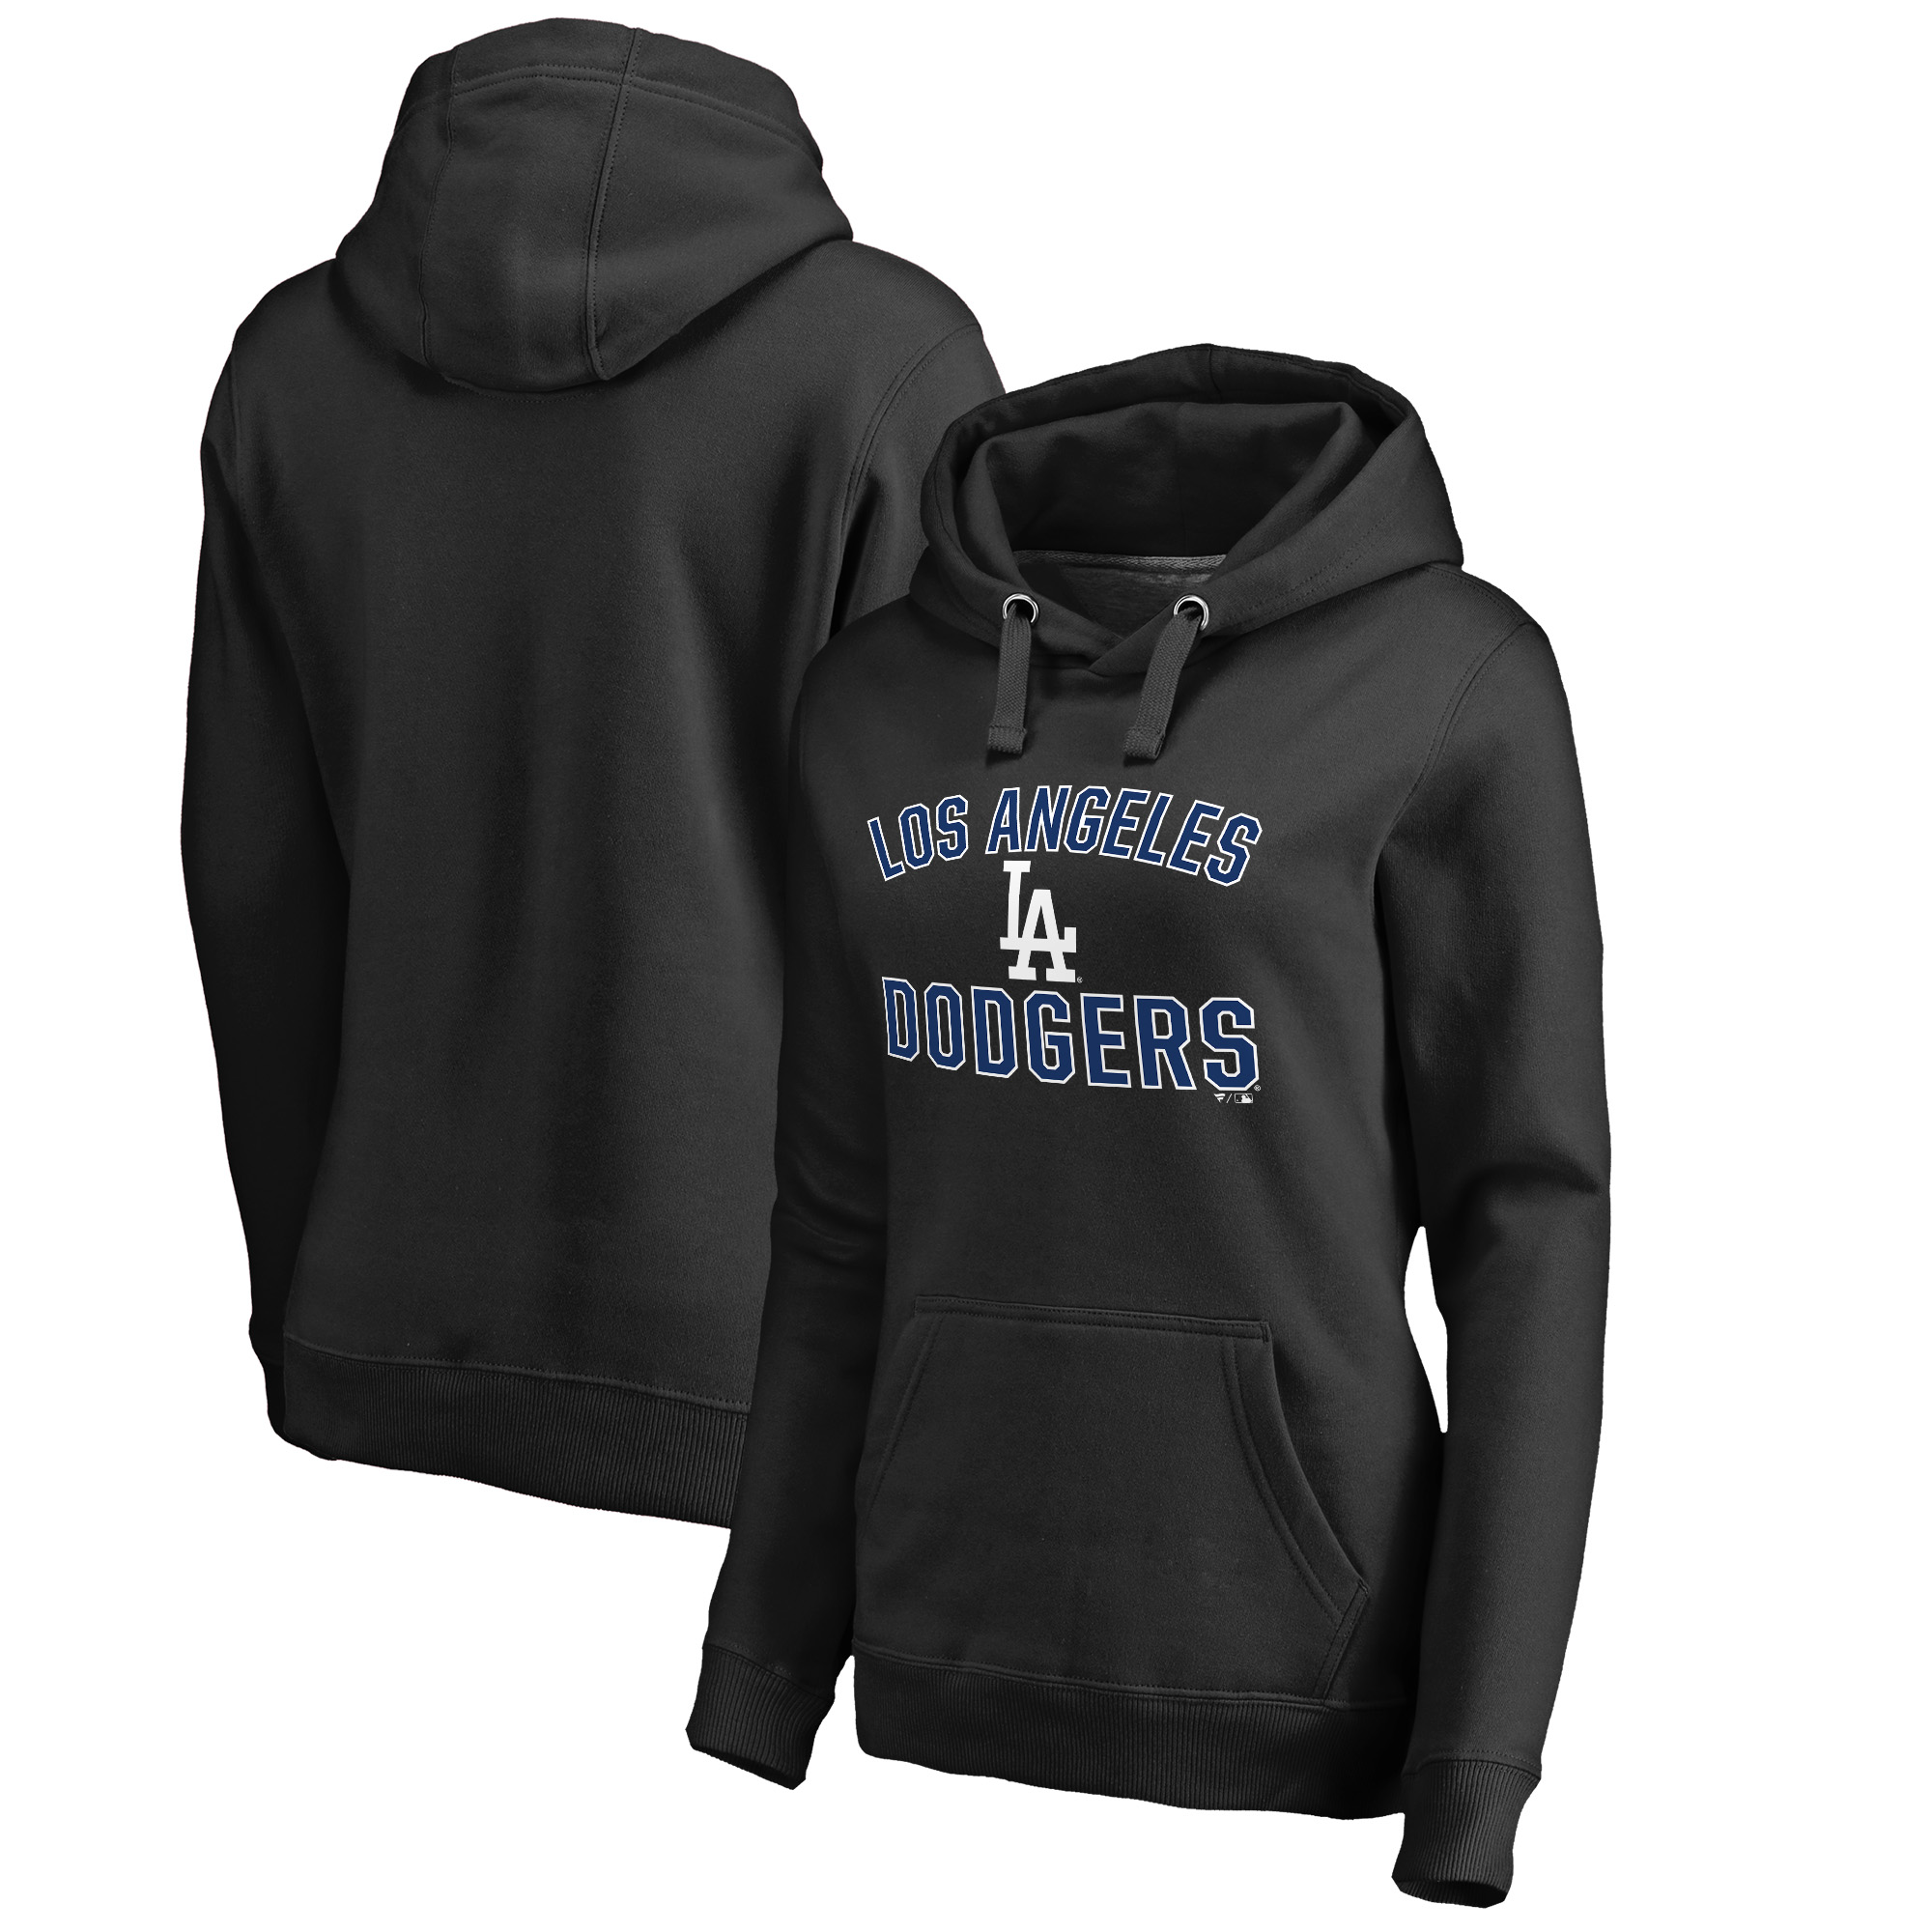 Los Angeles Dodgers Fanatics Branded Women's Team Victory Arch Pullover Hoodie - Black